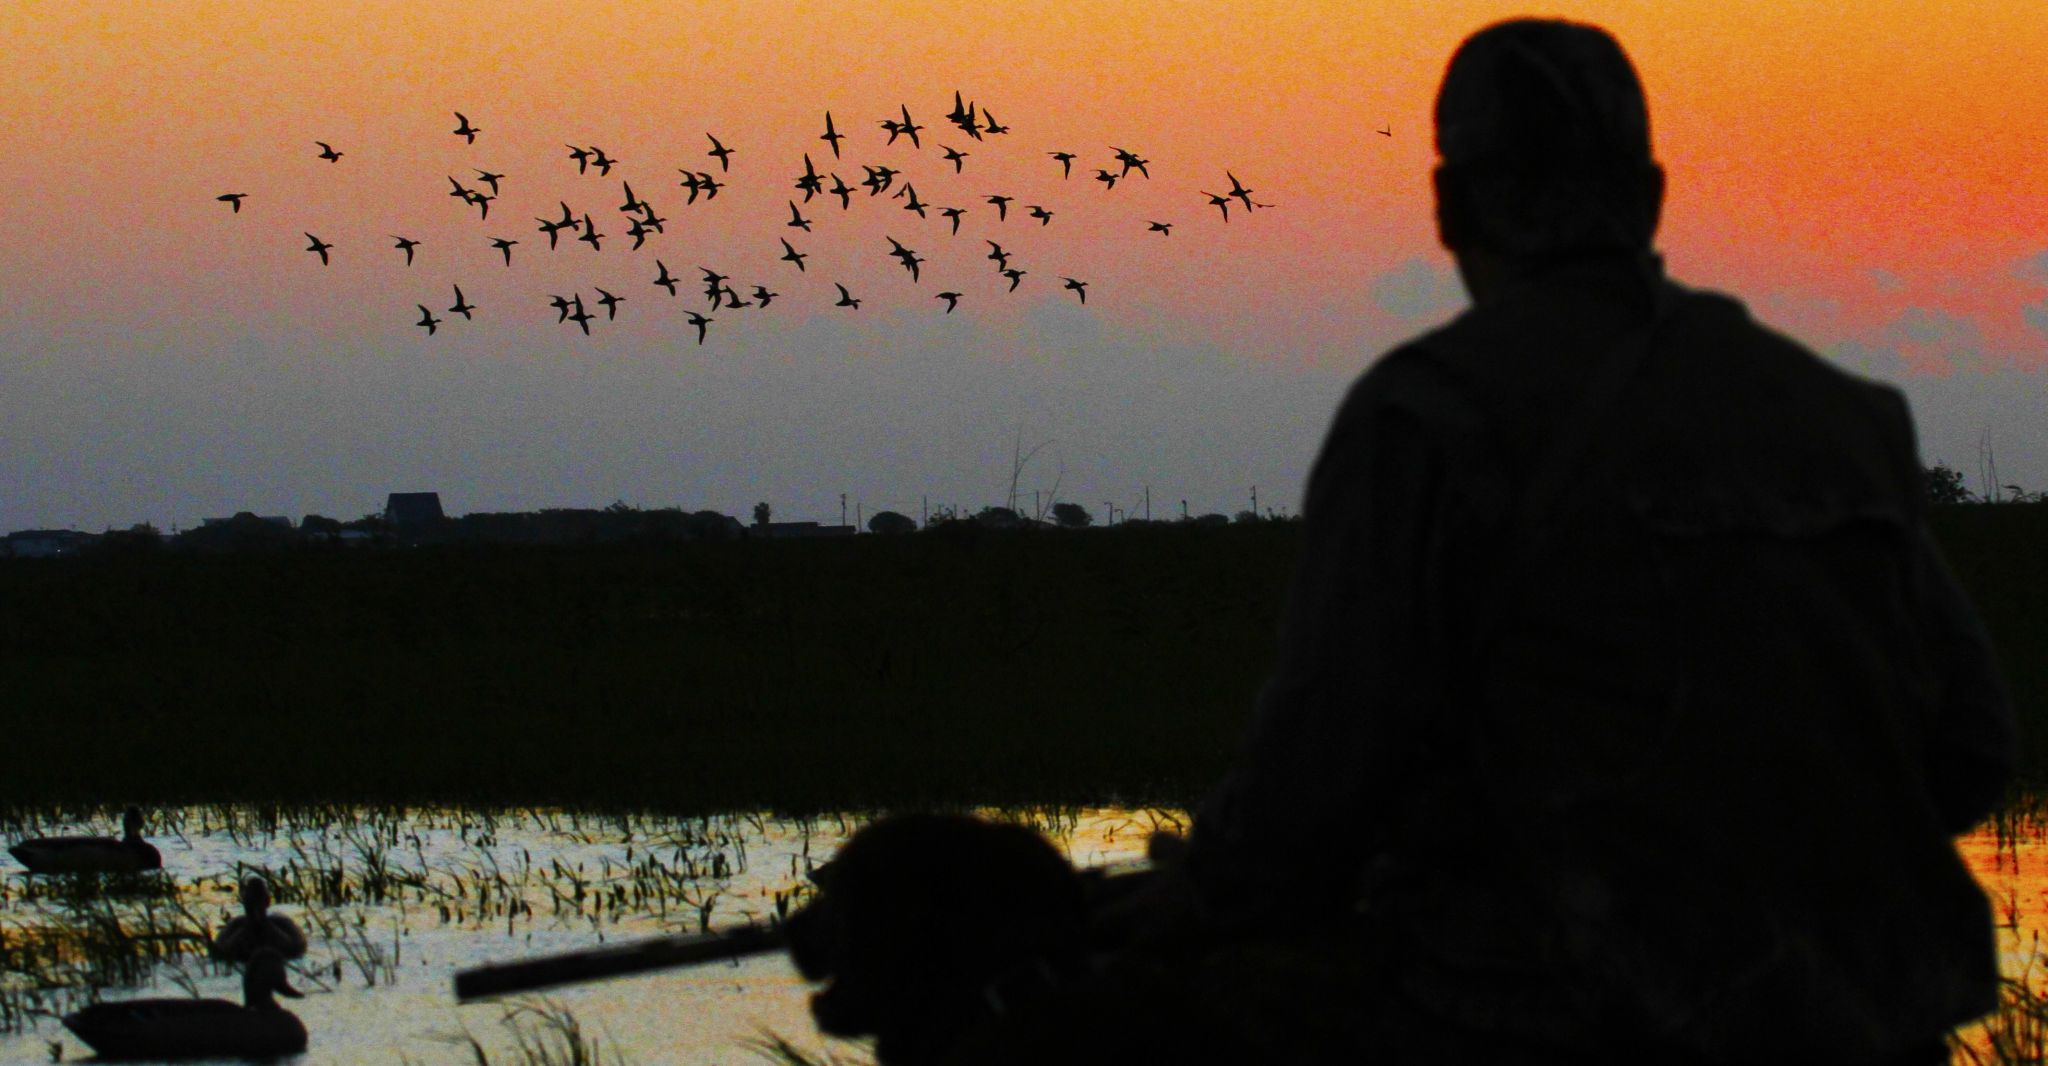 Teal season arrives for Texas hunters, and it'll be a scorcher